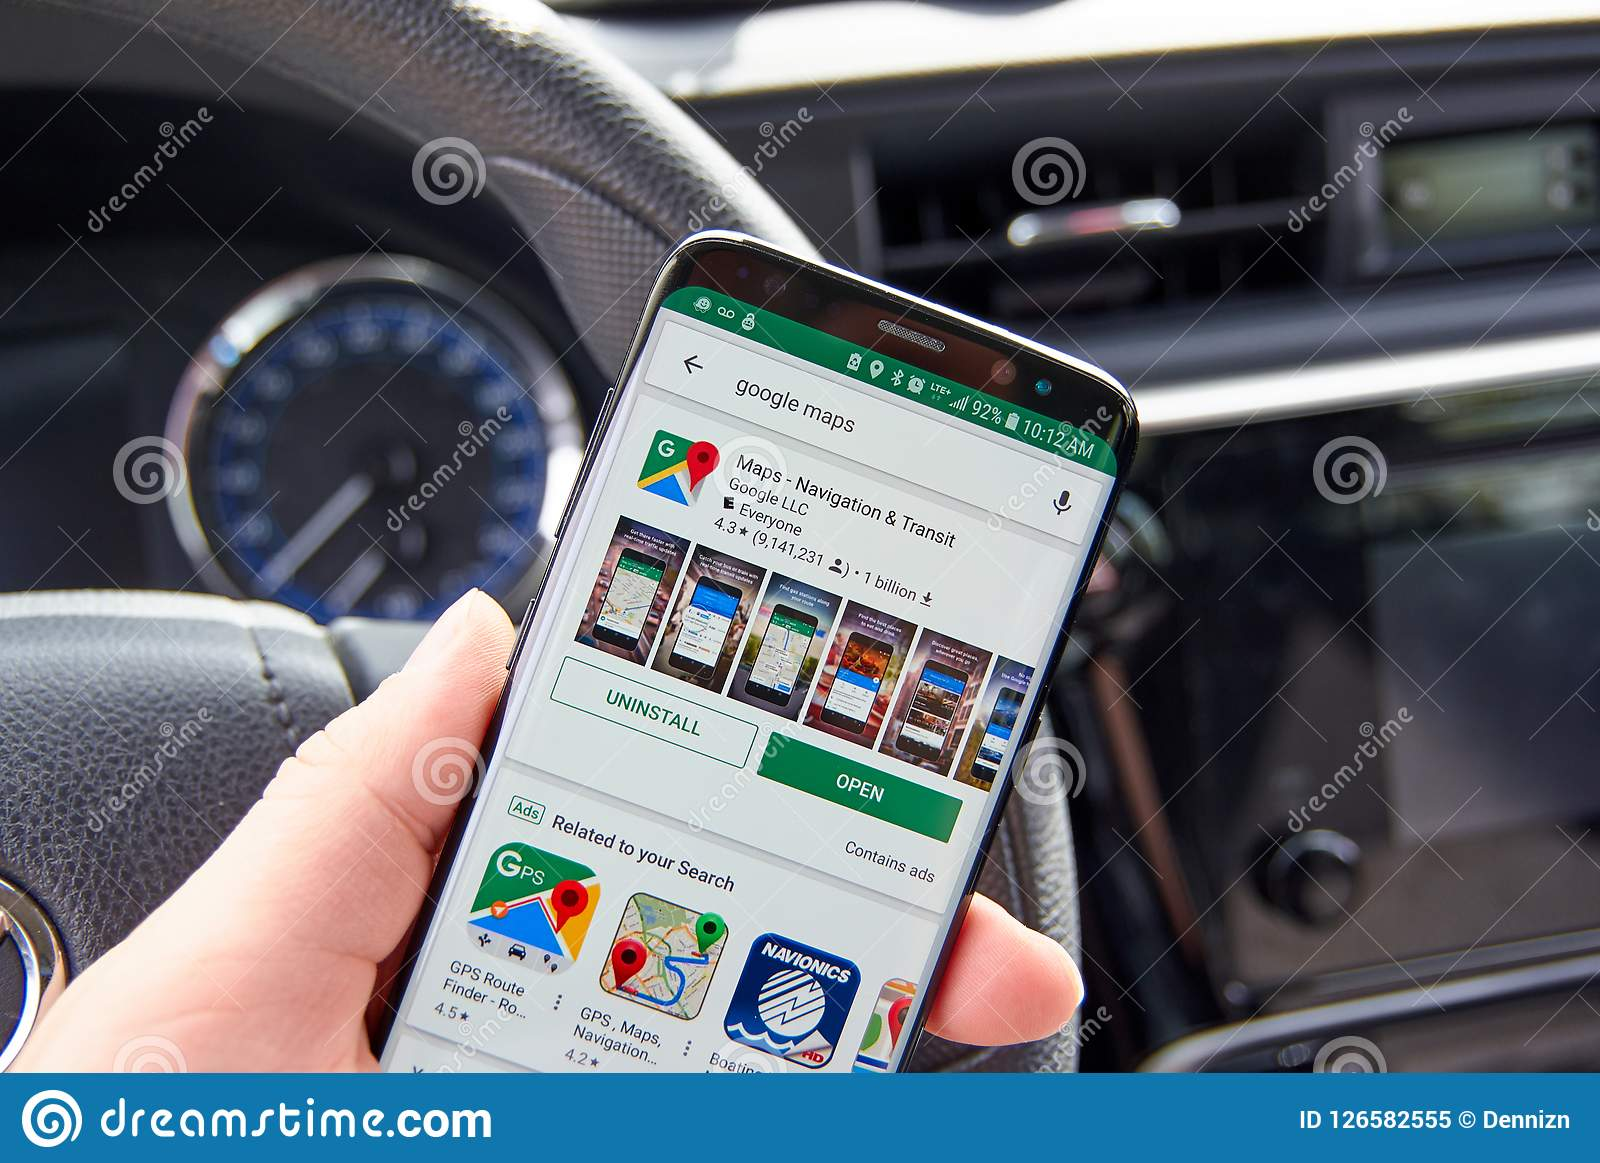 Google Maps Application On A Cell Phone Editorial Image ... on cell service, social media map, call phone map, crash landing map, us mail map, cell phones and driving articles, cellular network map, formula for map, phone on map, flashlight map, phone code map, locate mobile number on map, at&t wireless coverage map, phone tracker map, wireless phone service map, phone locator map,